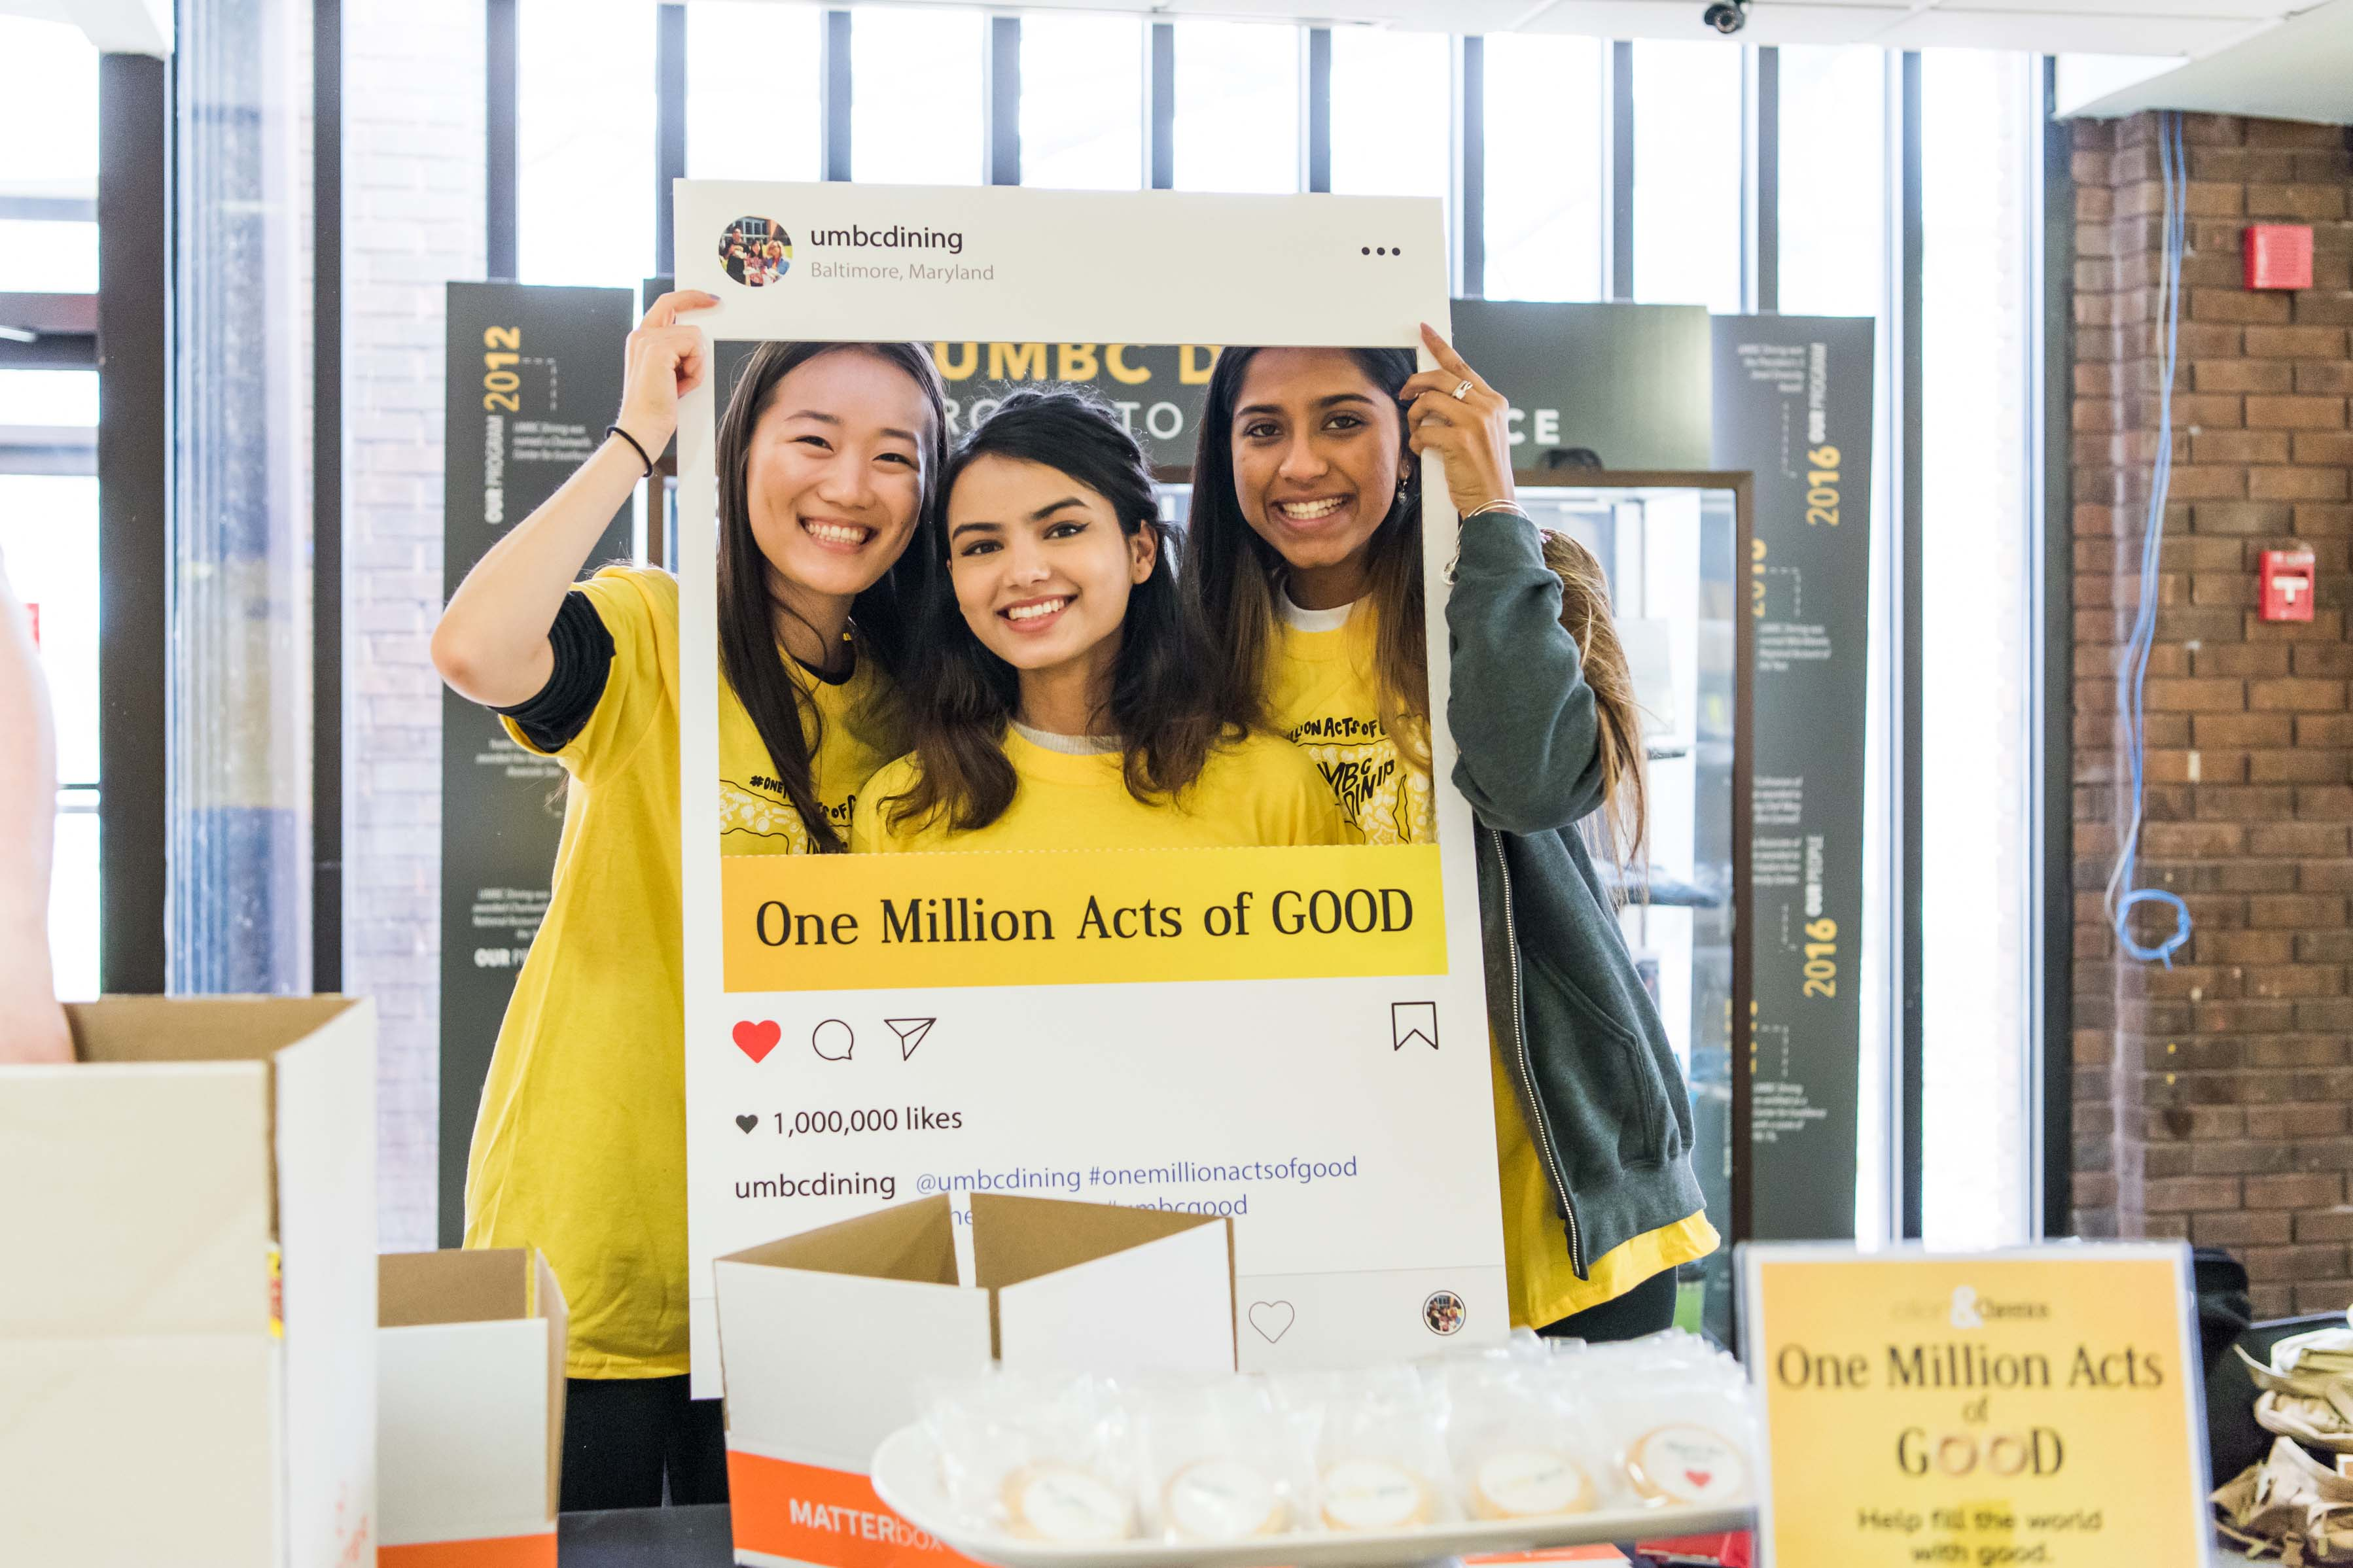 Three girls pose with One million acts of good frame